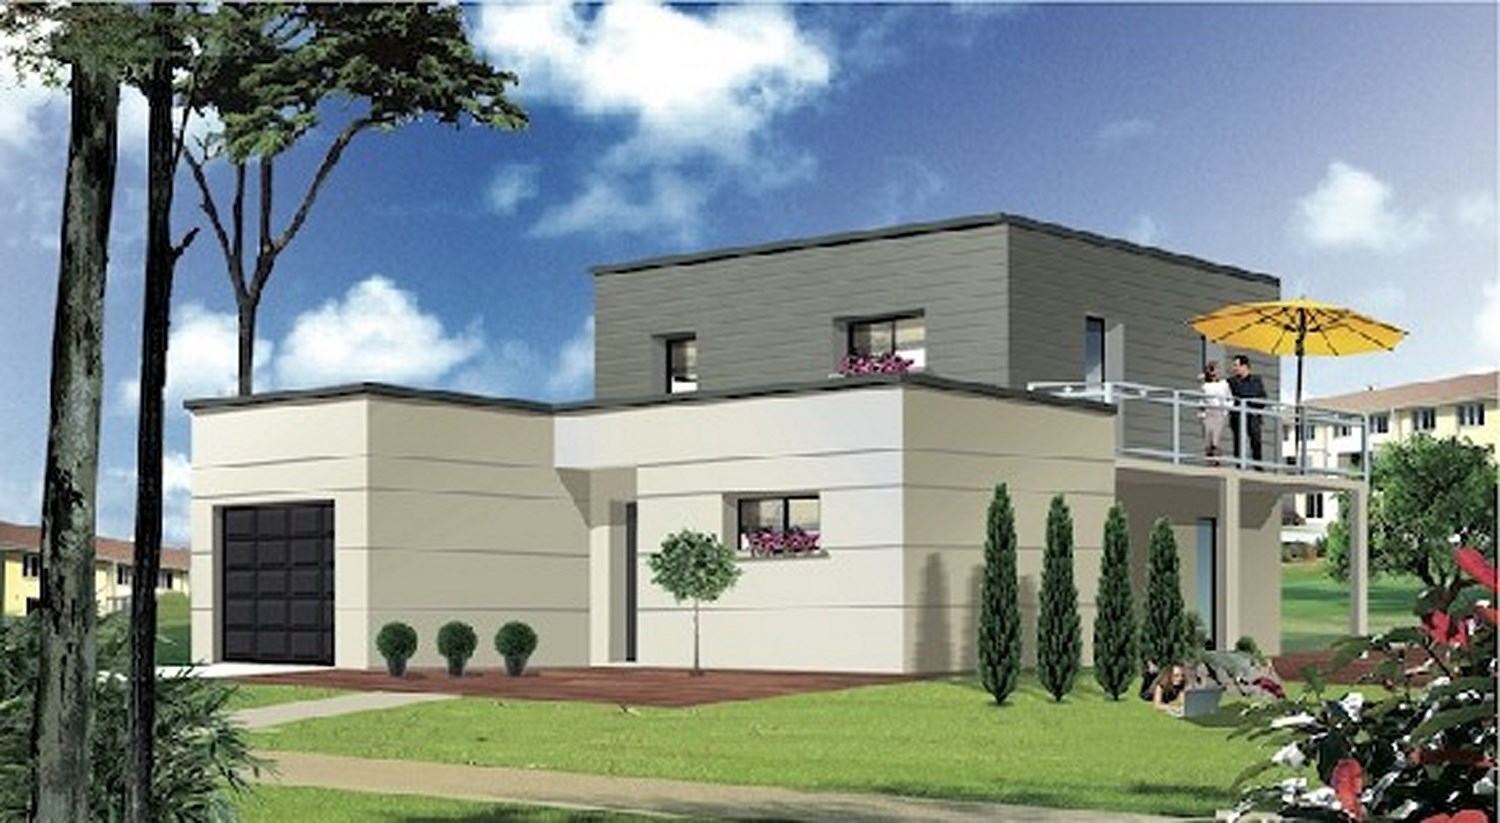 Plan maison contemporaine toit plat maison moderne - Plan de maisons contemporaines ...